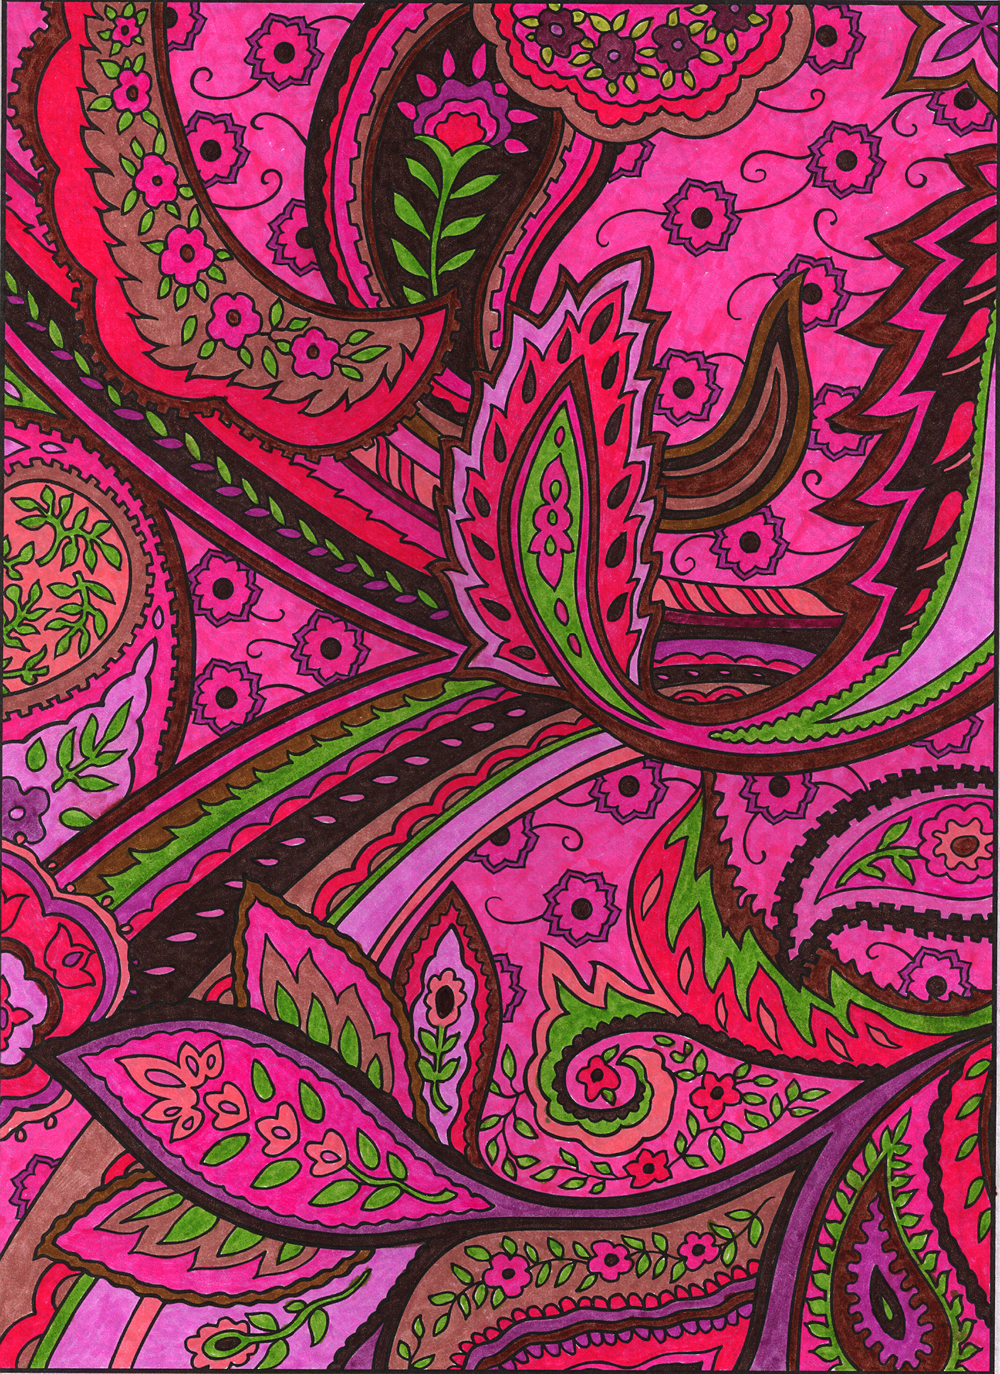 Paisley Designs By Marty Noble A Few More Images From This Coloring Book